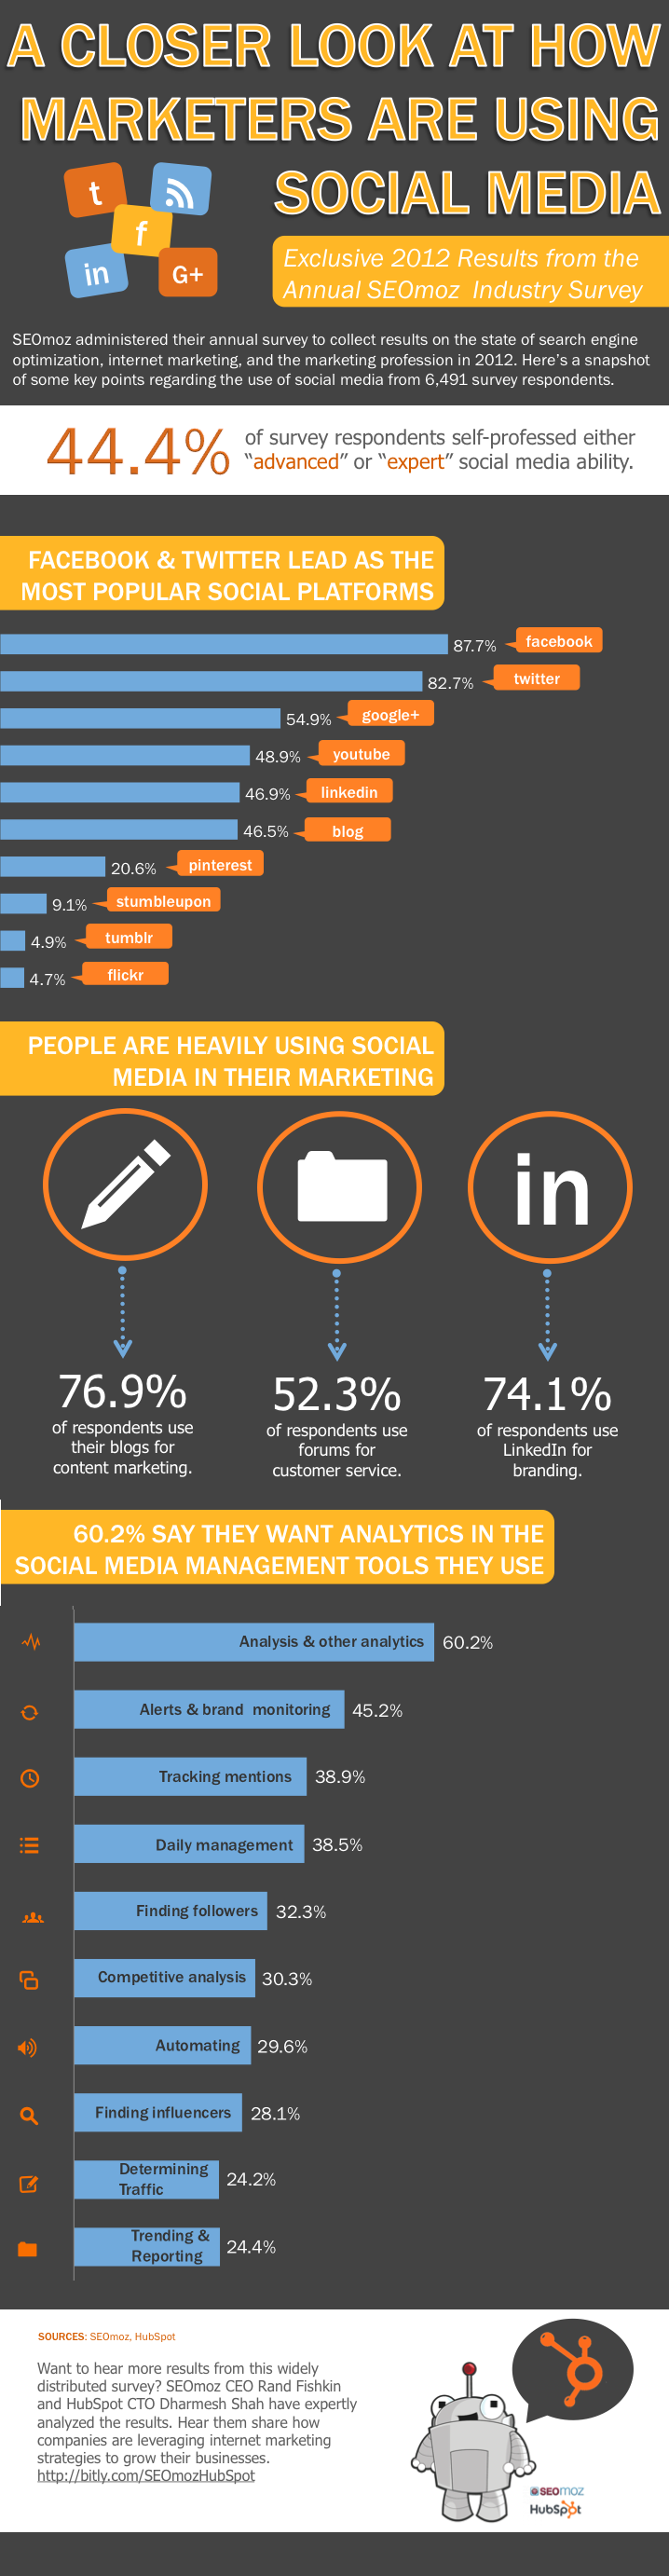 seomoz hubspot infographic social media usage 2012